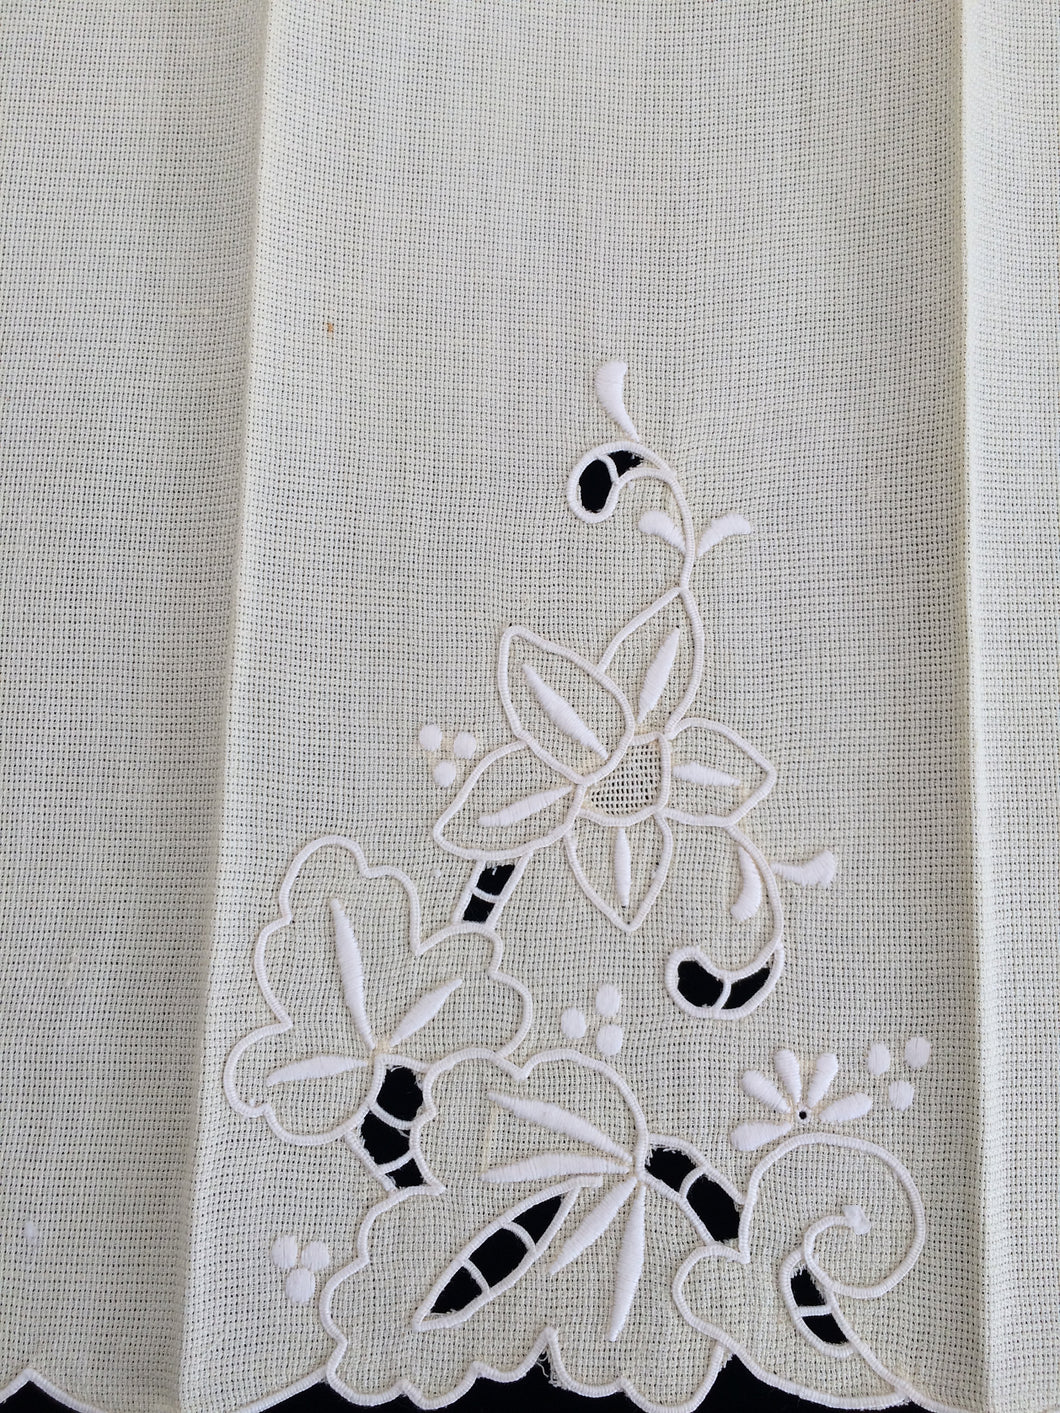 Vintage Pale Yellow and White Madeira Embroidered Linen Tea or Guest Towel